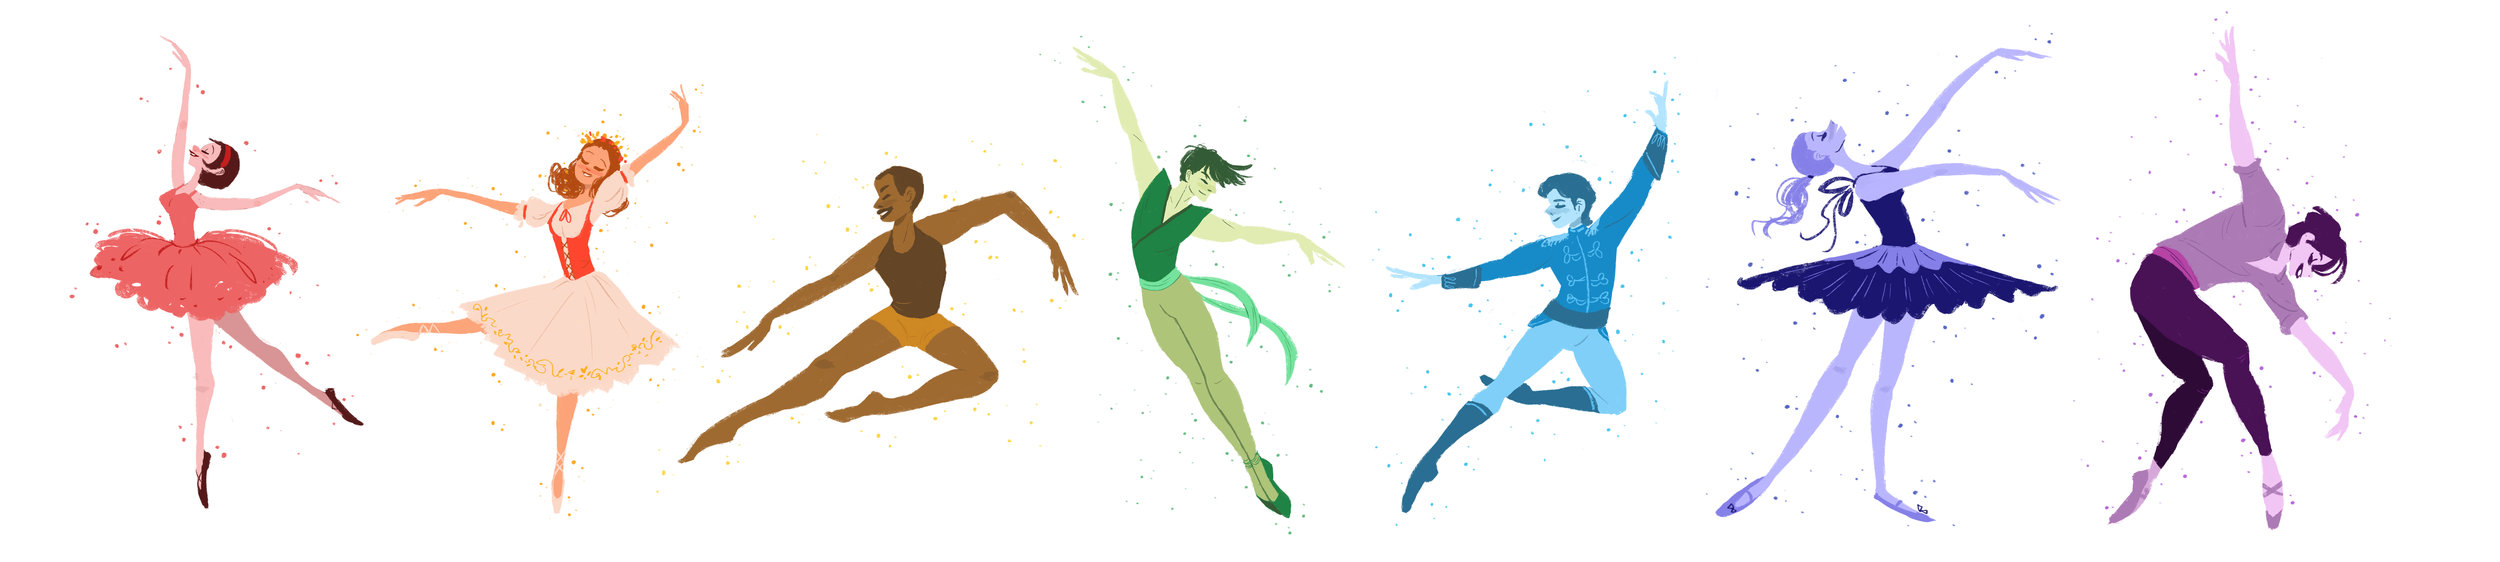 One day one Ballet_co.jpg